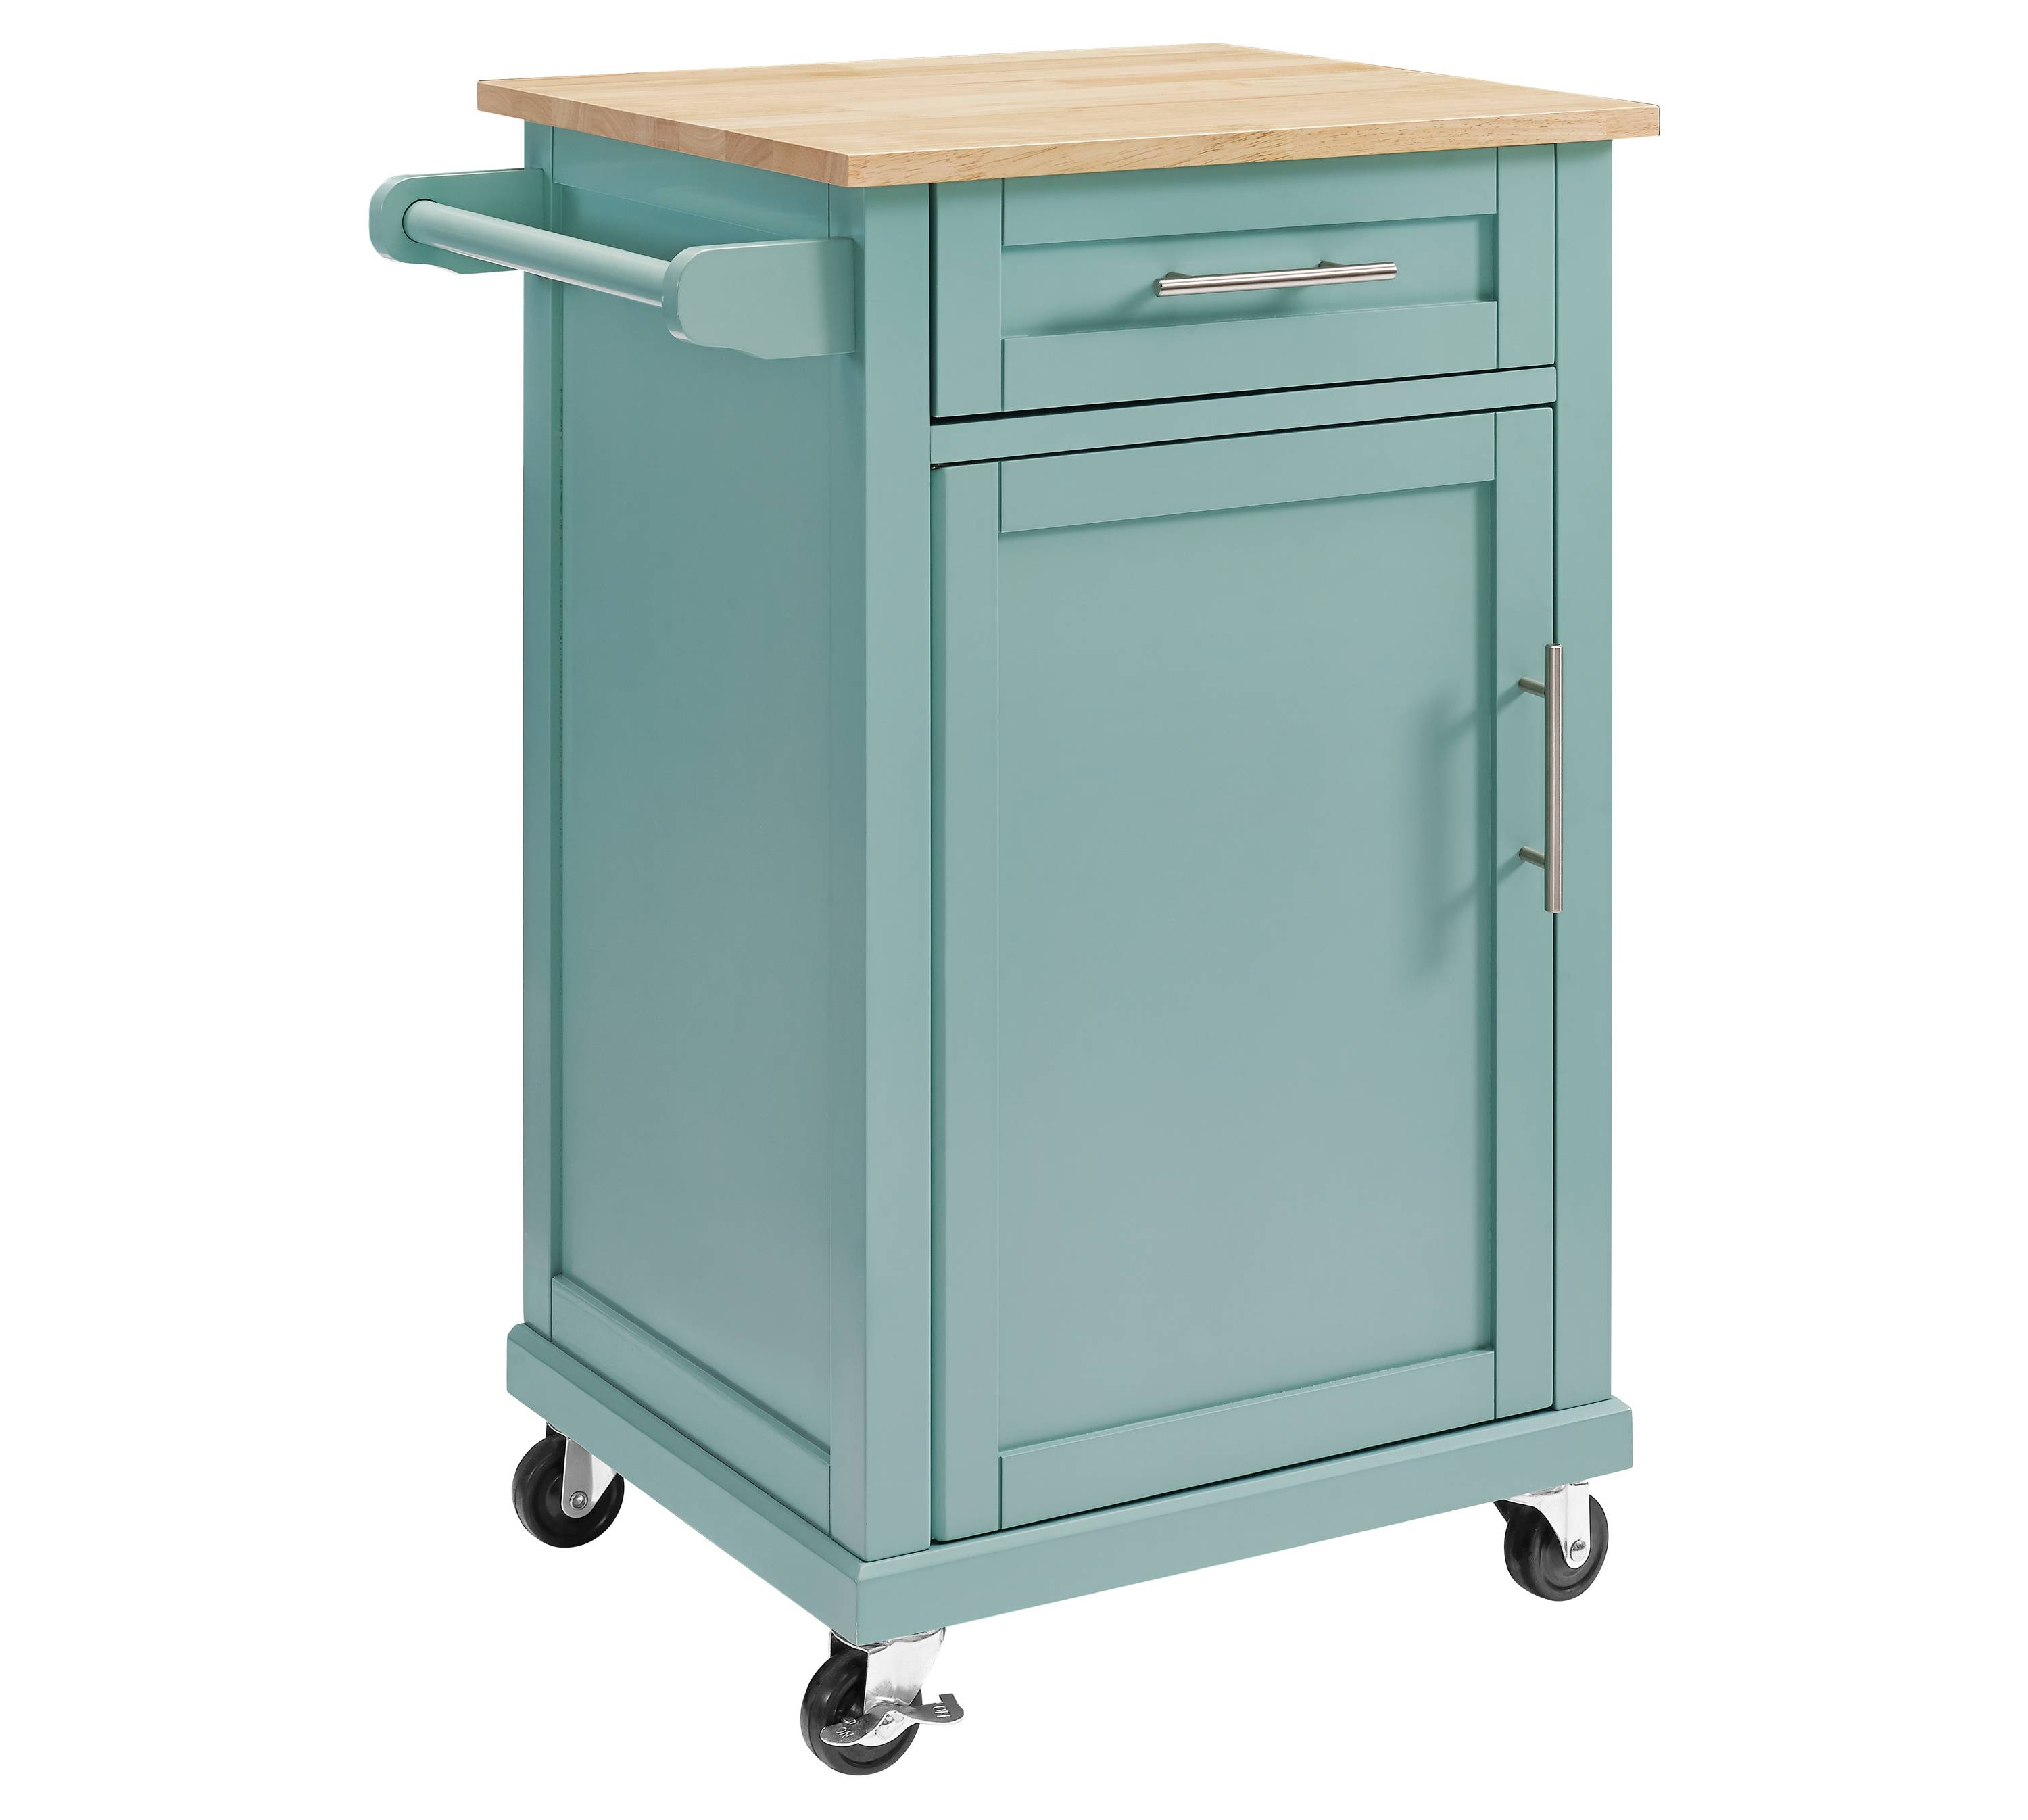 Carey Small Kitchen Cart | Everything Turquoise